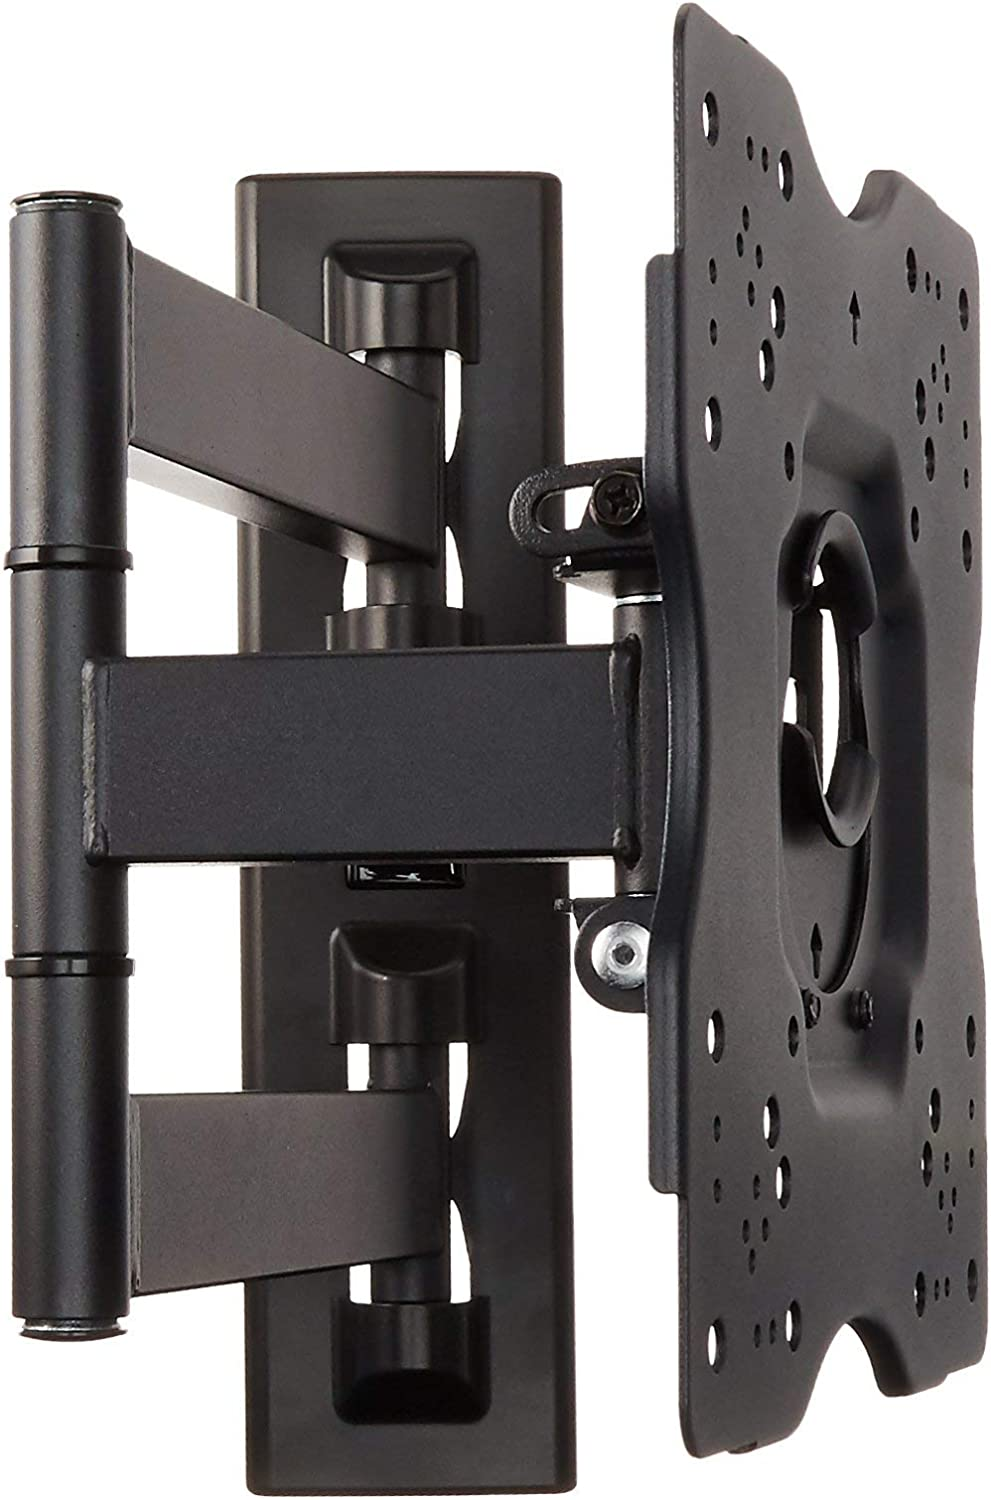 AmazonBasics Heavy-Duty TV Wall Mount